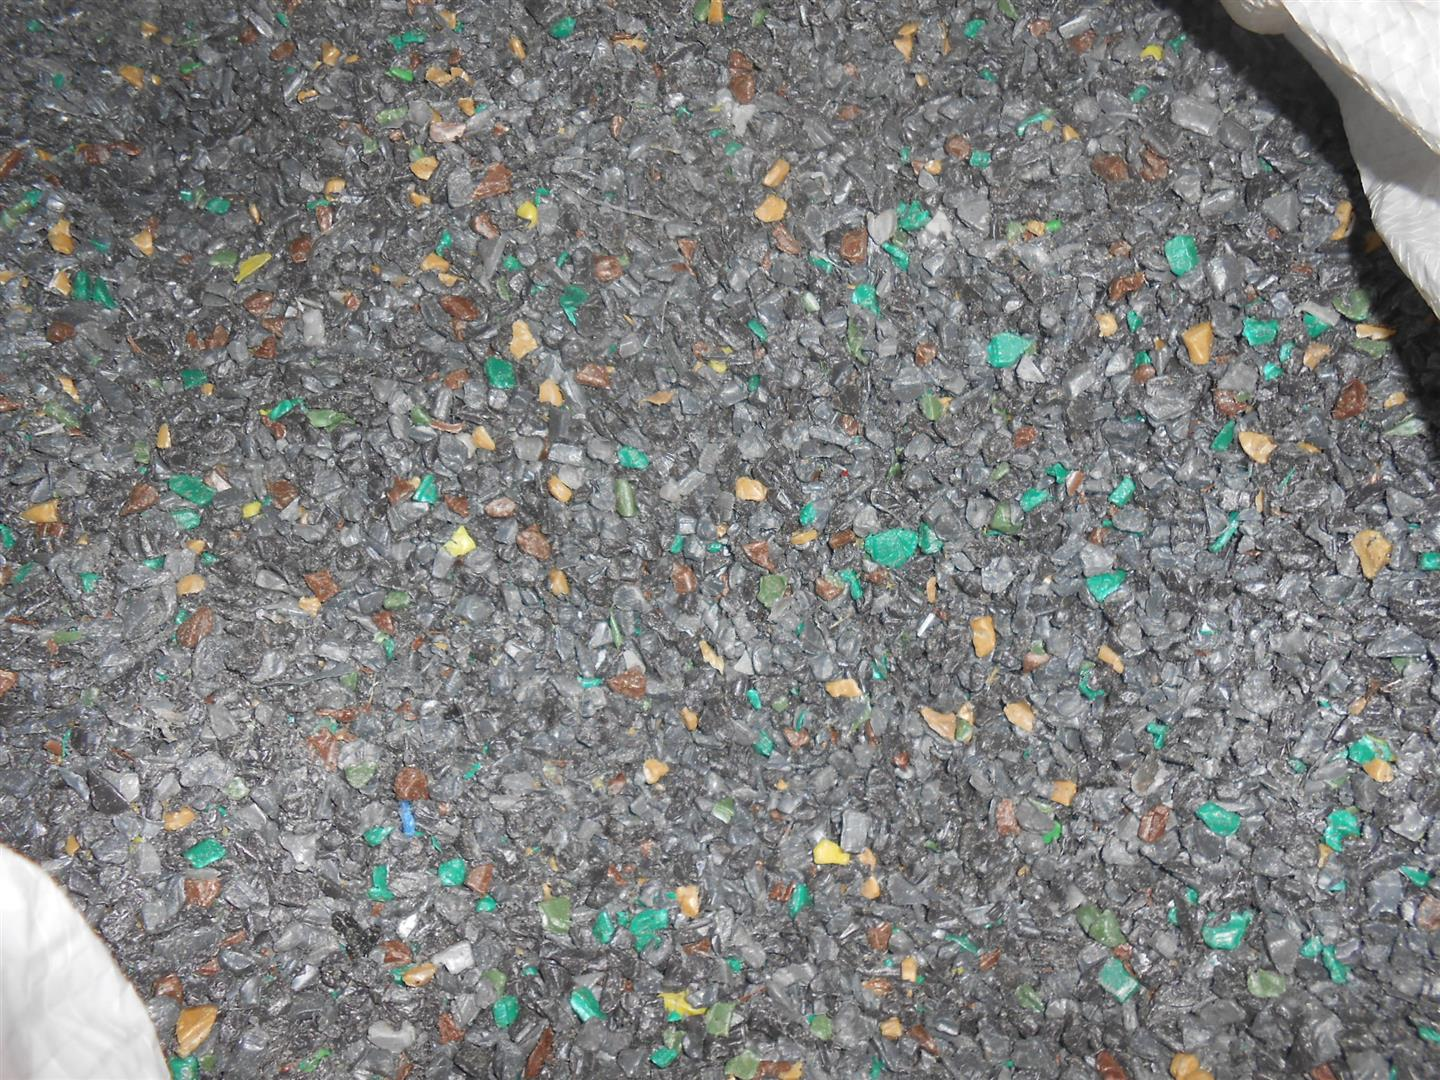 HDPE GARBAGE BIN SHREDDED